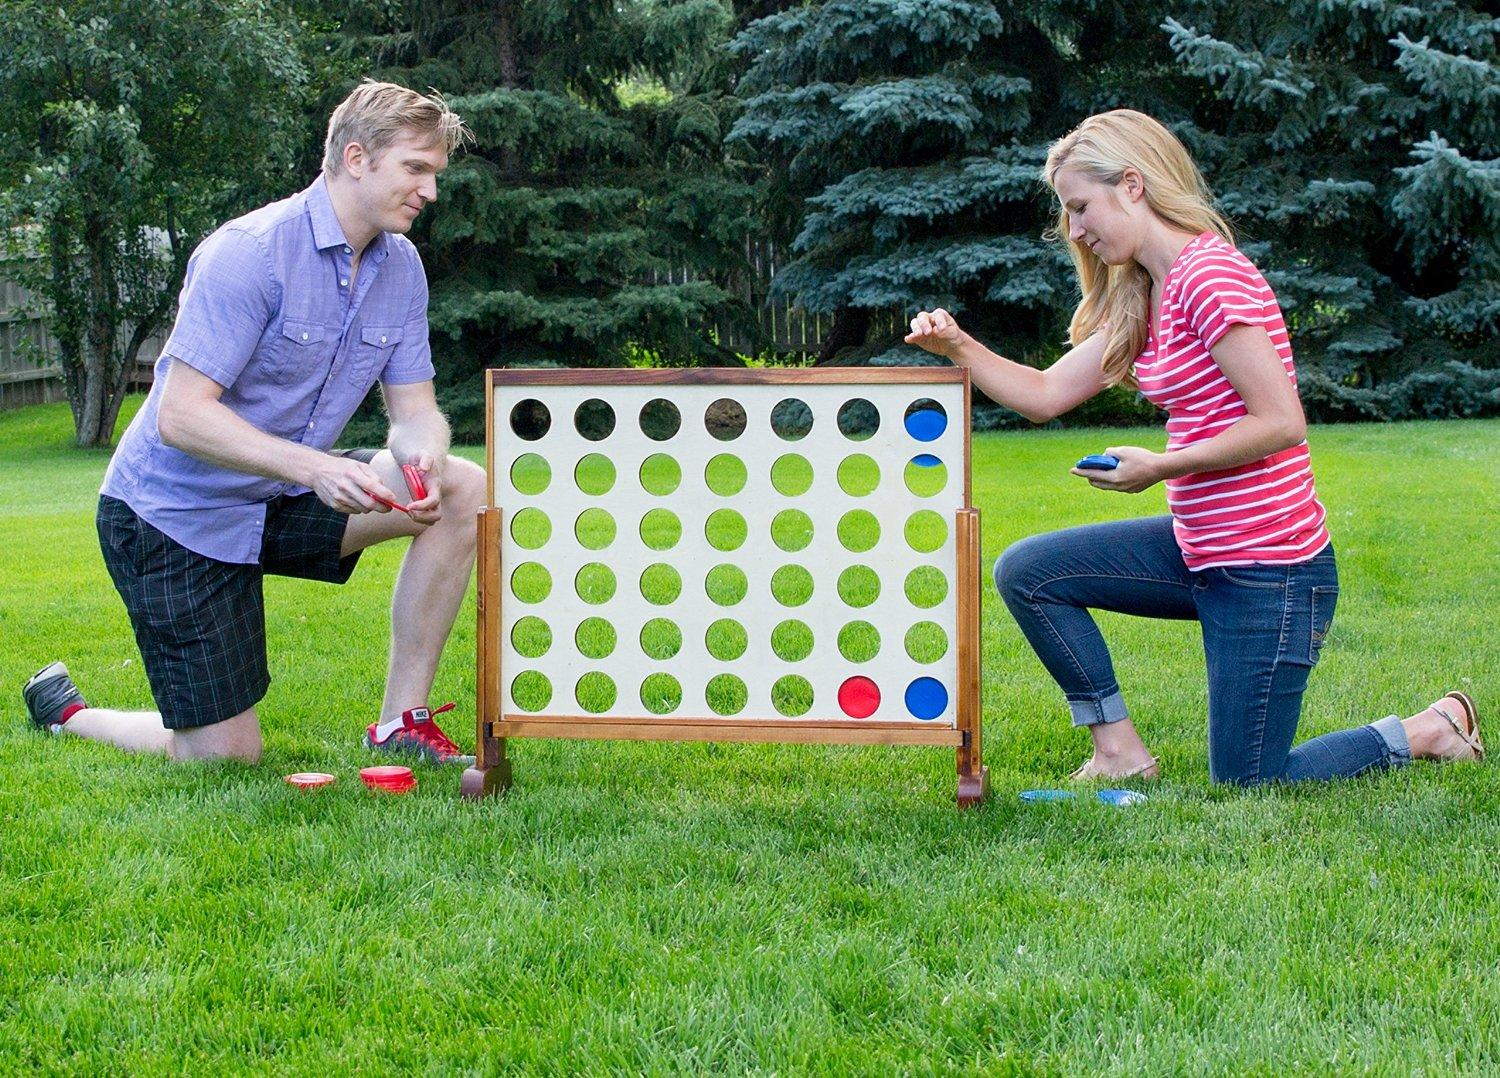 Giant Connect 4 Outdoor Game Rental Denver Co